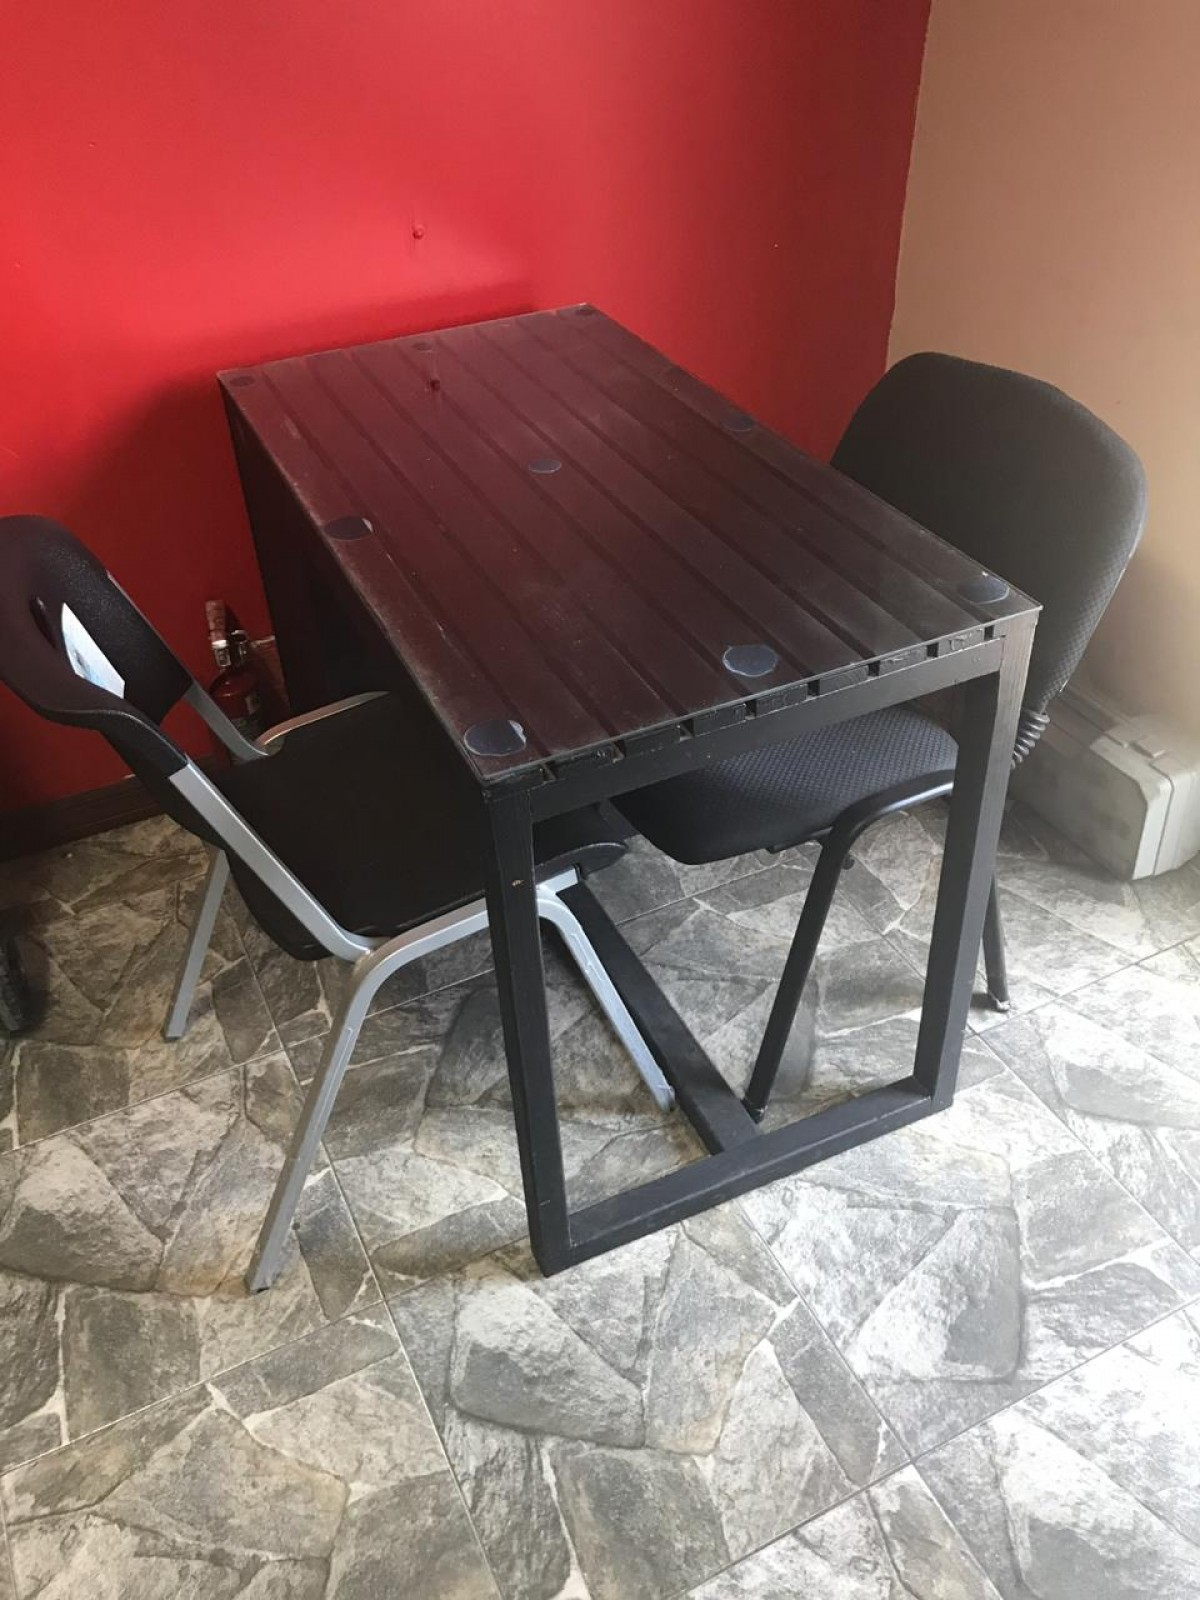 Salon Equipment And Furniture For Sale in Kingston Kingston St